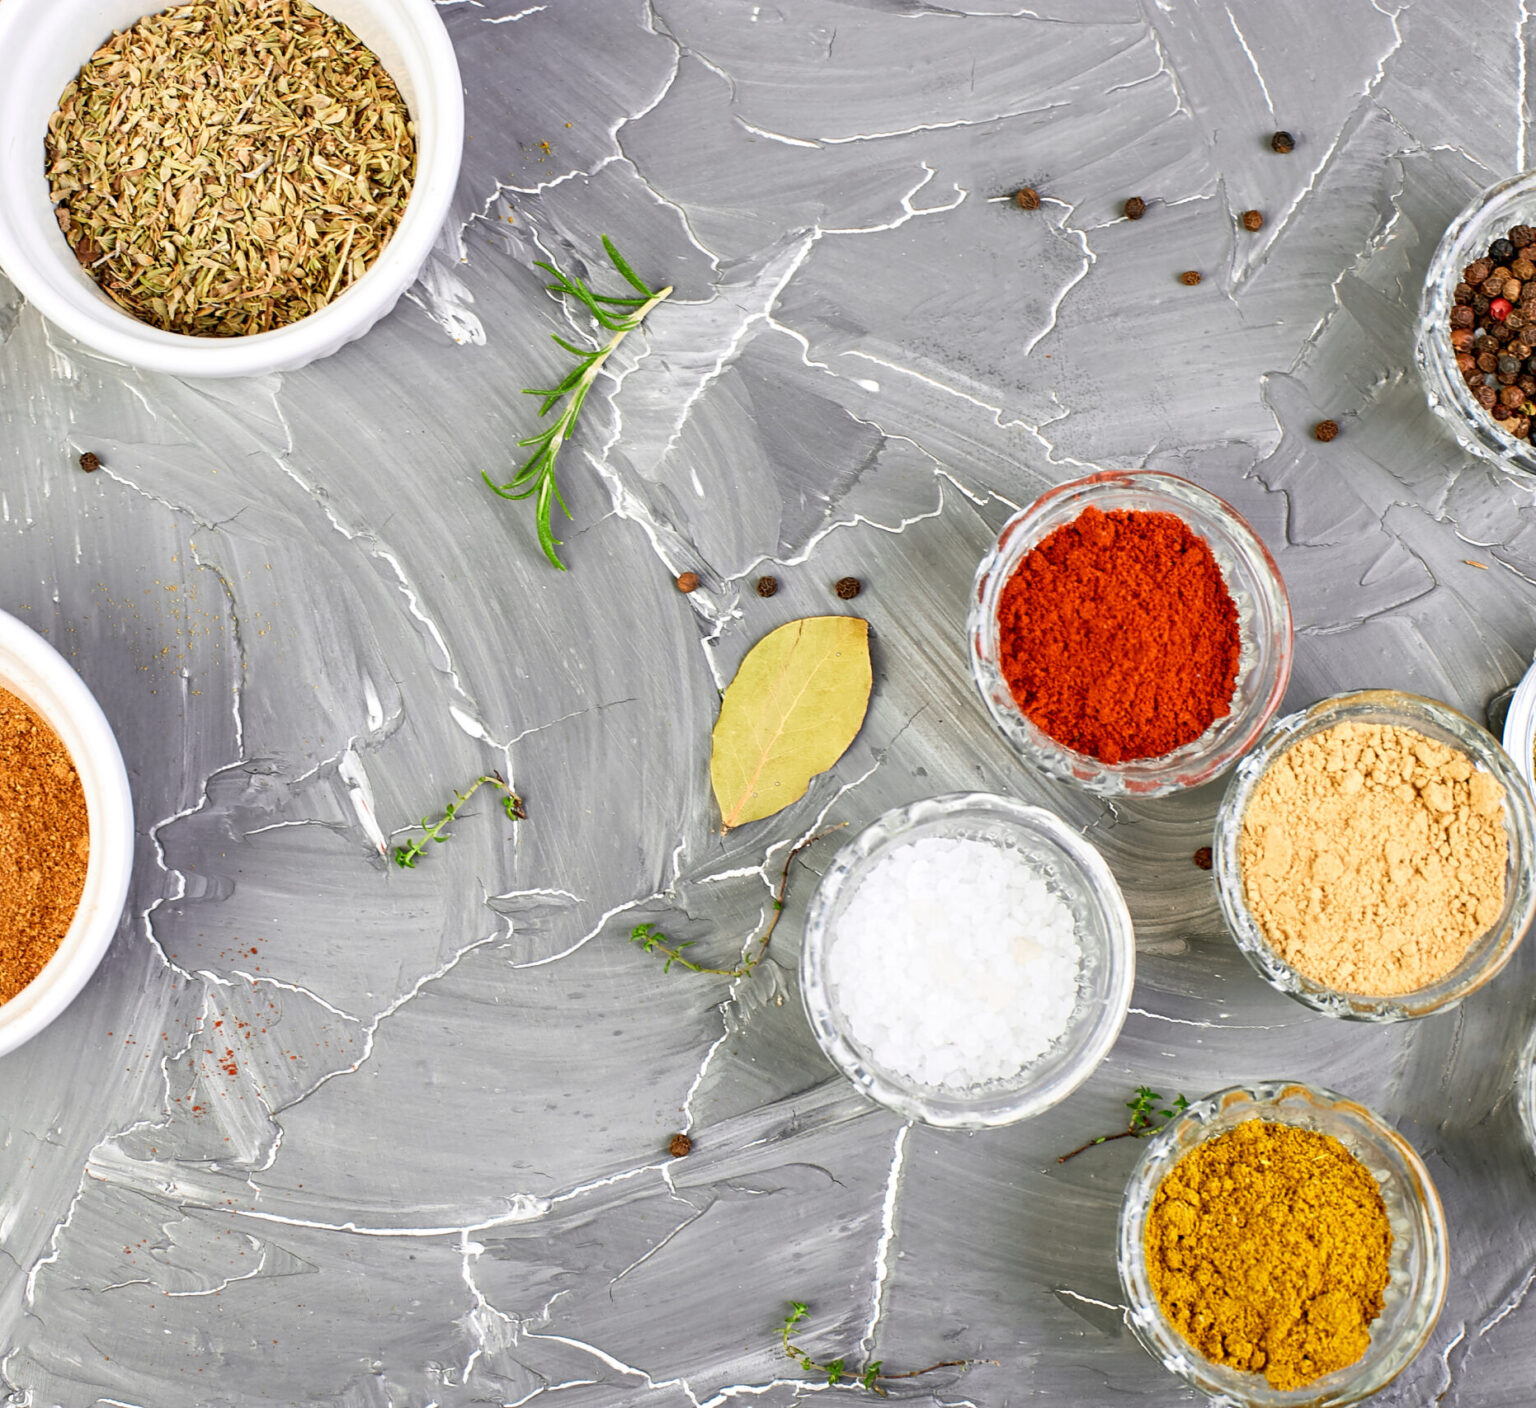 Seasoning background. Spice and herb seasoning with fresh and dried herbs and spices in bowls. Colourful various herbs and spices for cooking on grey background. Top view. Copy space.